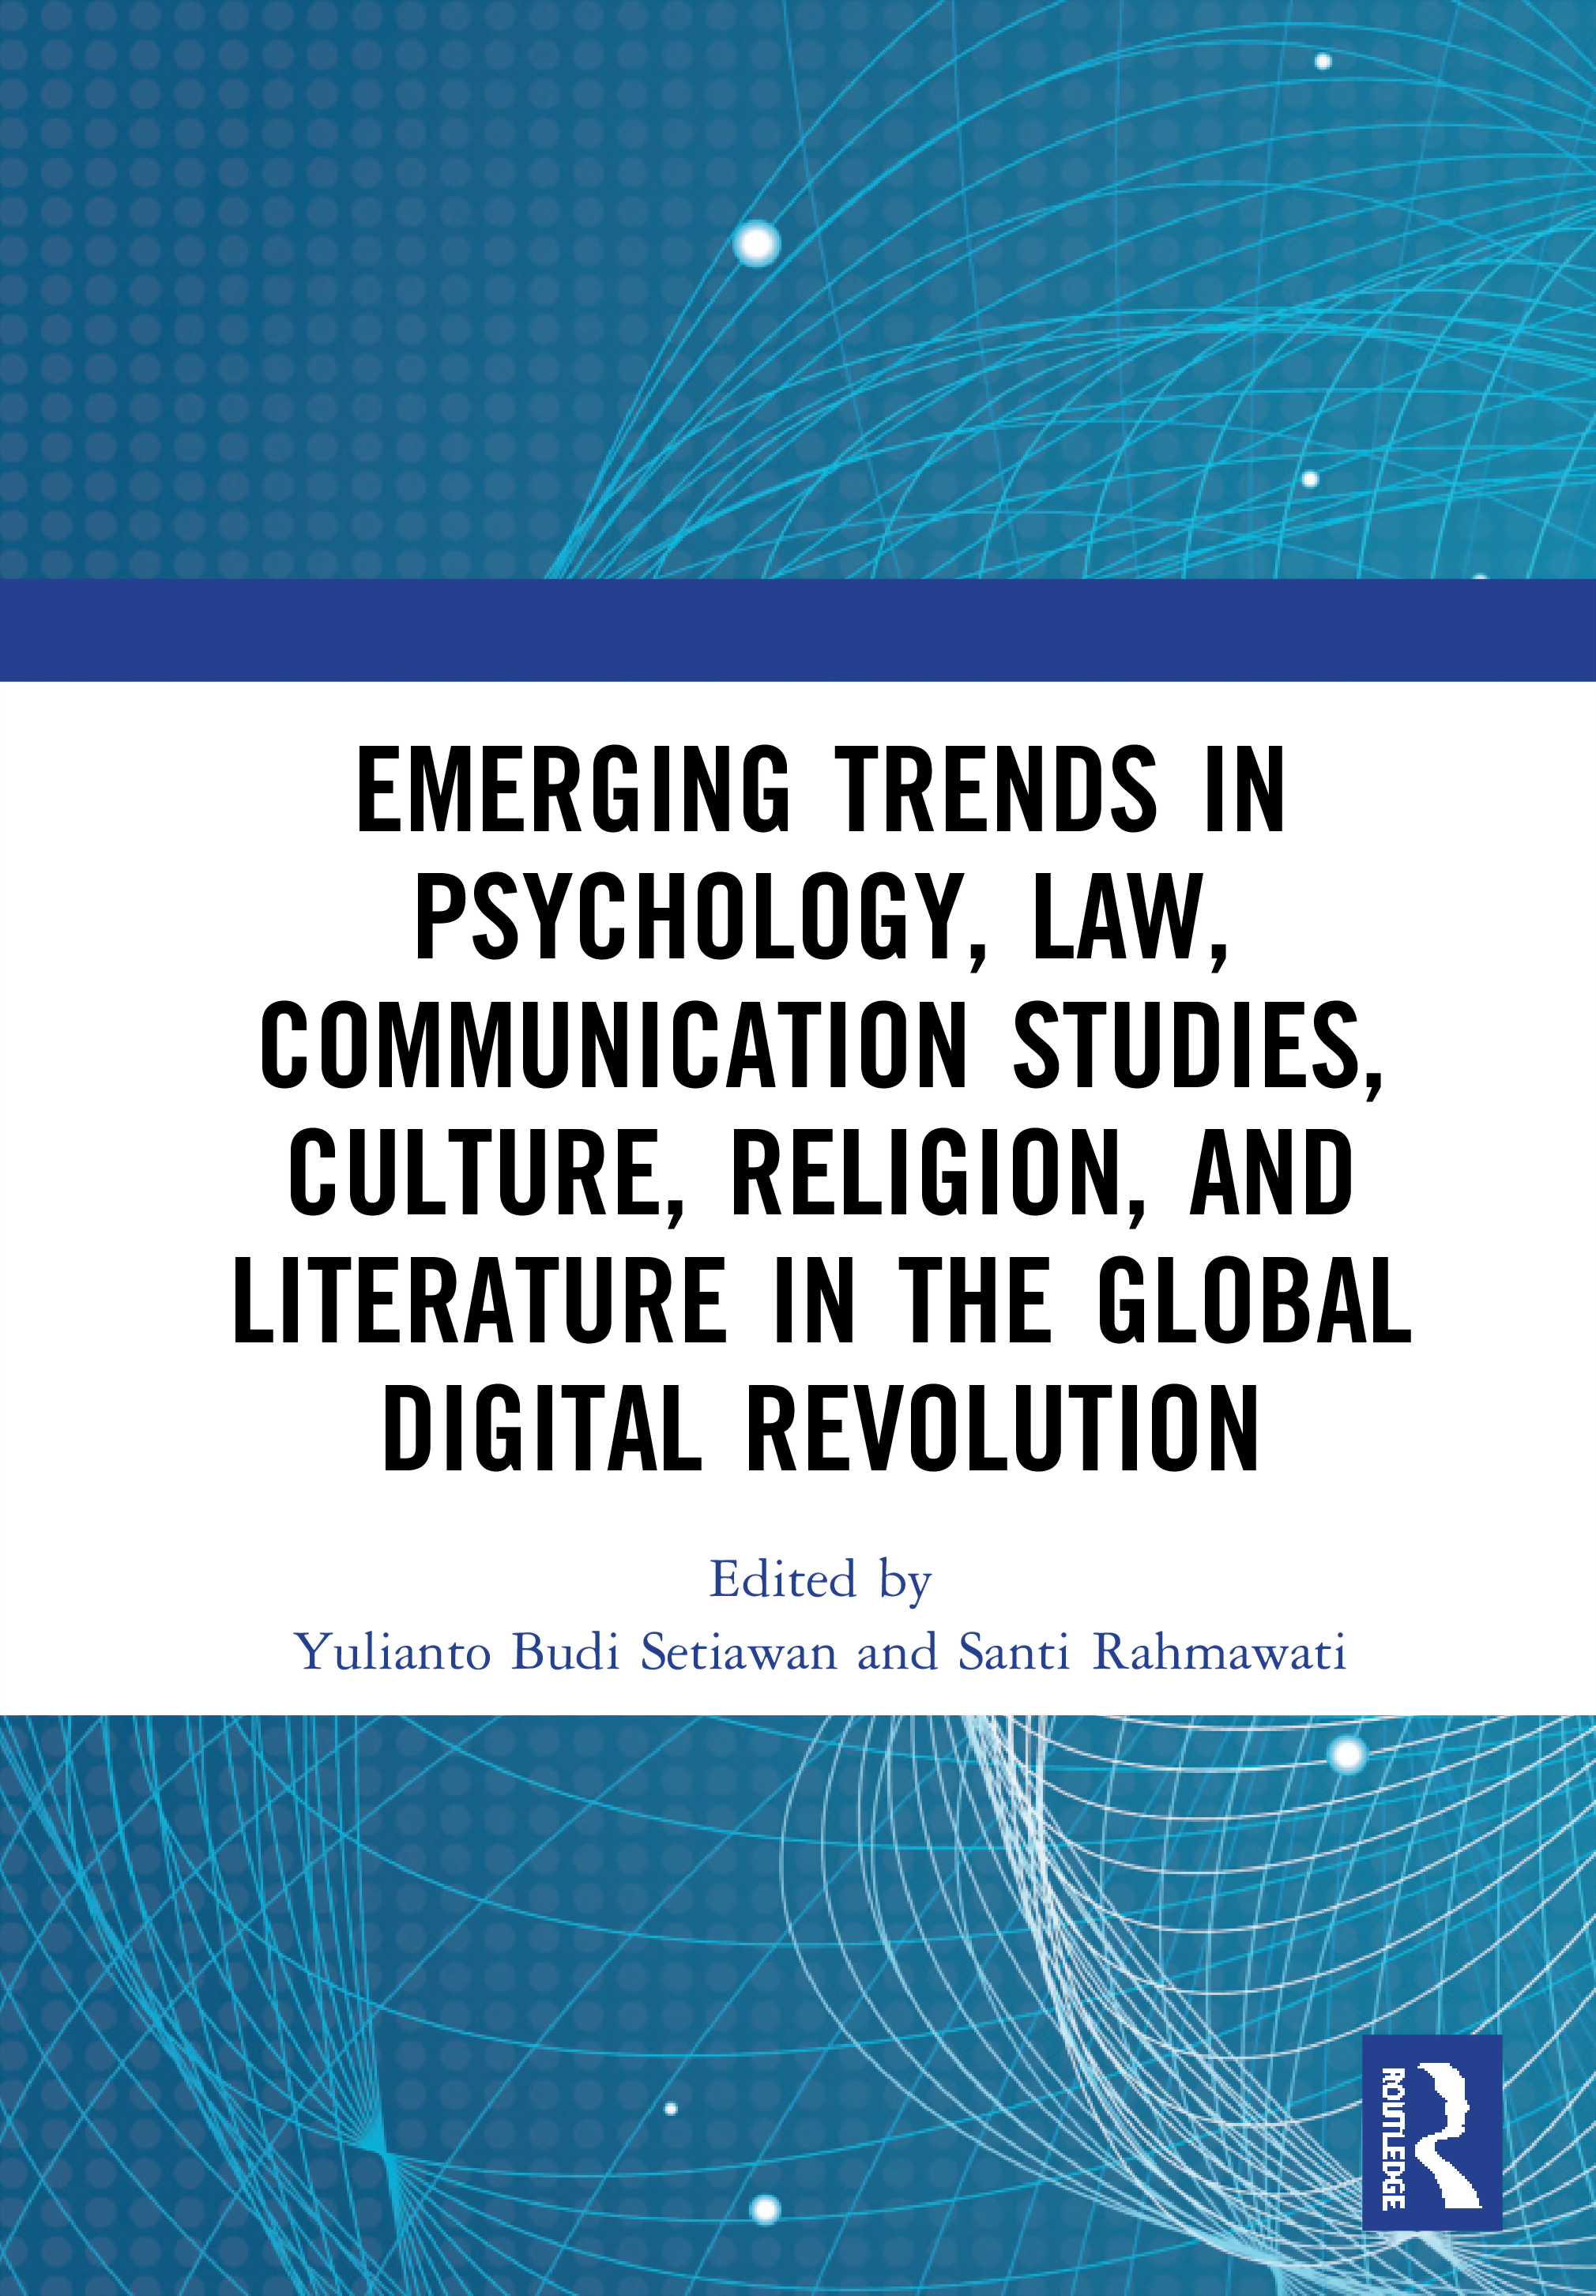 Emerging Trends in Psychology, Law, Communication Studies, Culture, Religion, and Literature in the Global Digital Revolution: Proceedings of the 1st International Conference on Social Sciences Series: Psychology, Law, Communication Studies, Culture, Religion, and Literature (SOSCIS 2019), July 10 2019, Semarang Indonesia, 1st Edition (e-Book) book cover